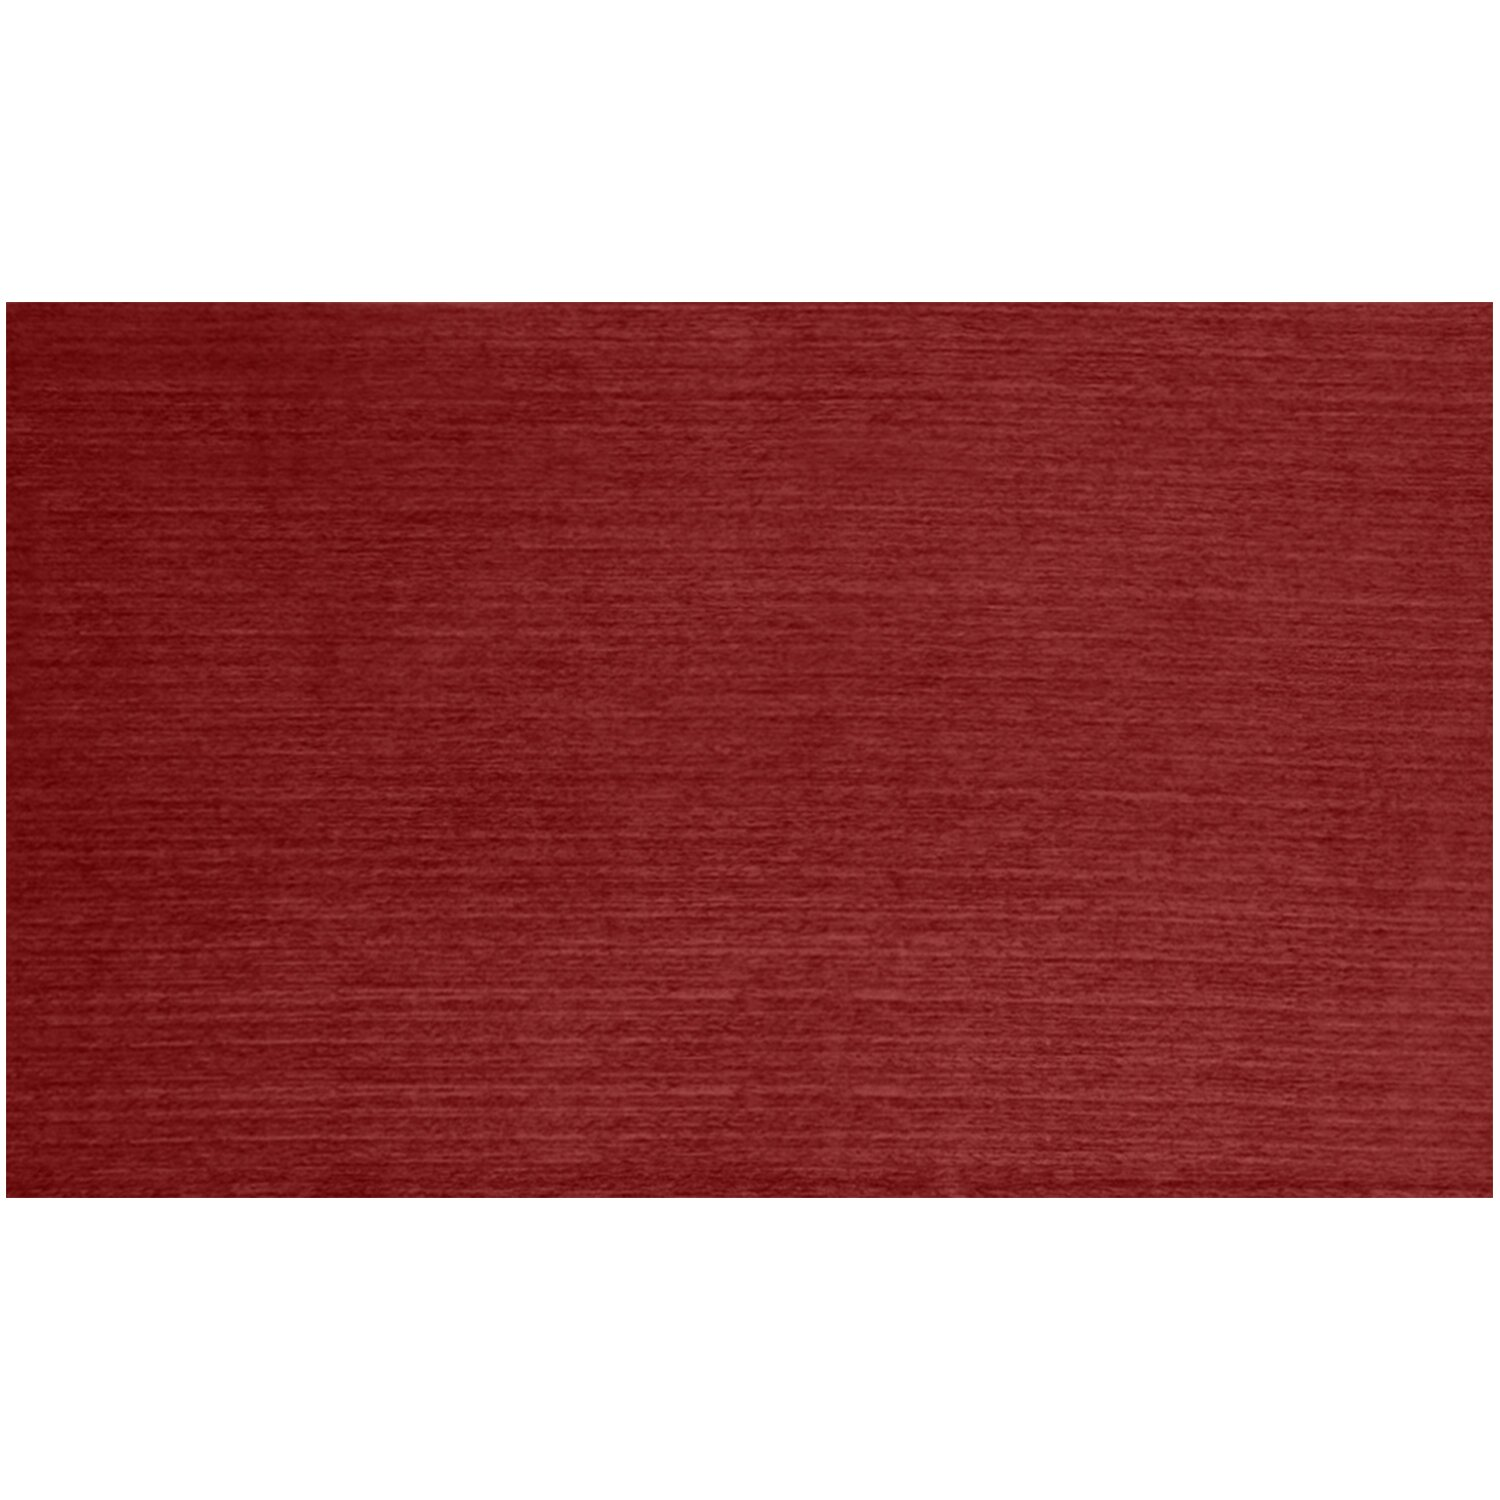 Ruggable Hand Woven Red Indoor/Outdoor Area Rug & Reviews